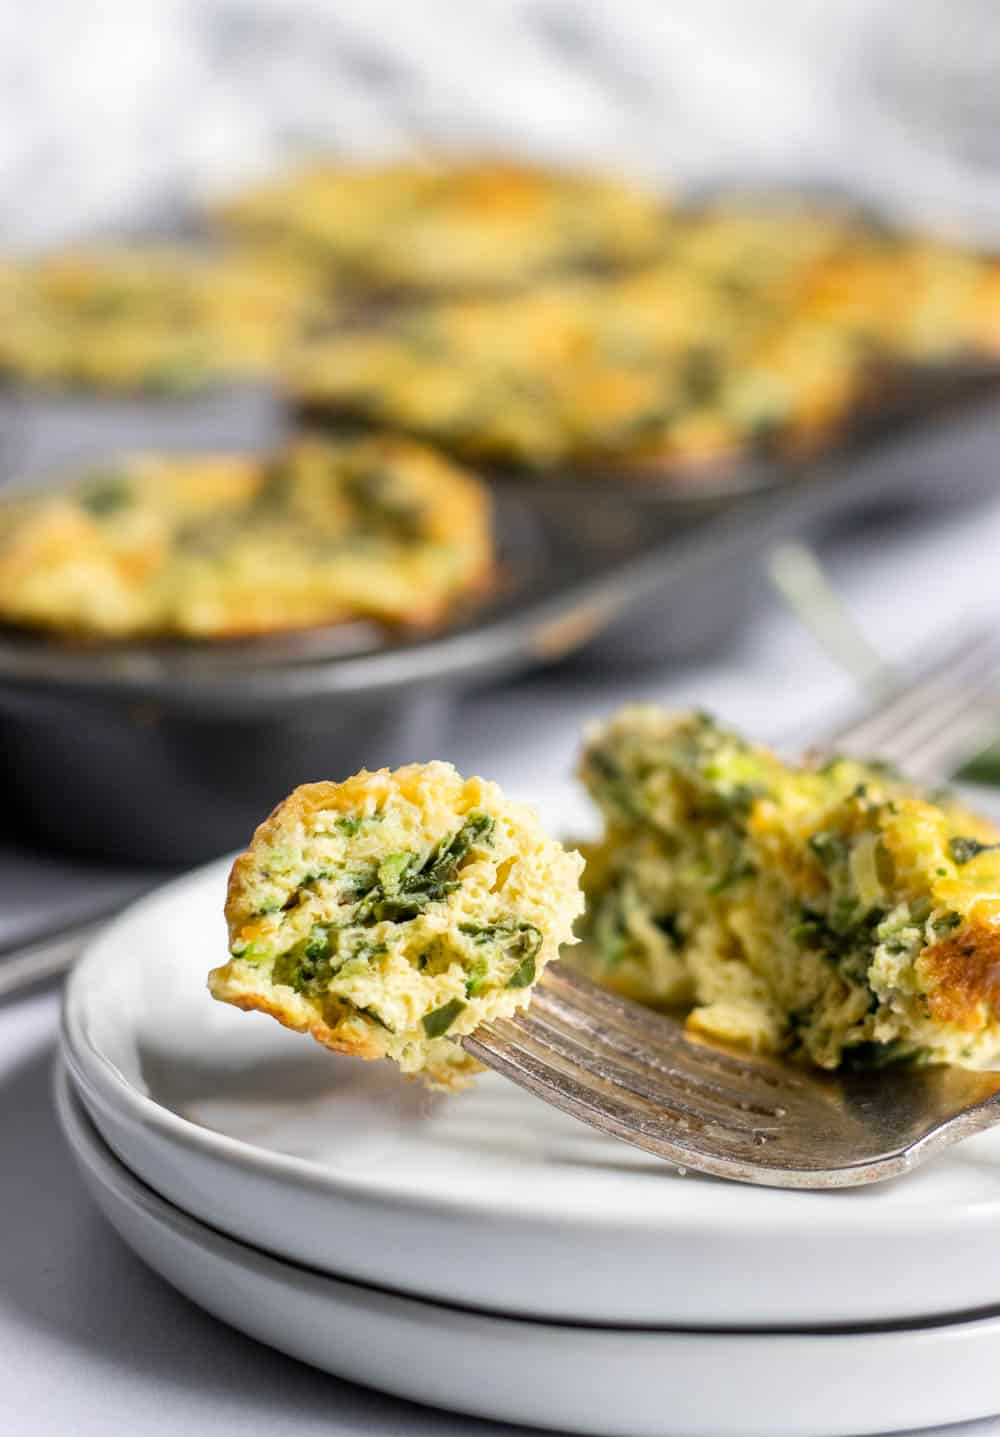 Breakfast Egg Muffins with Spinach and Zucchini